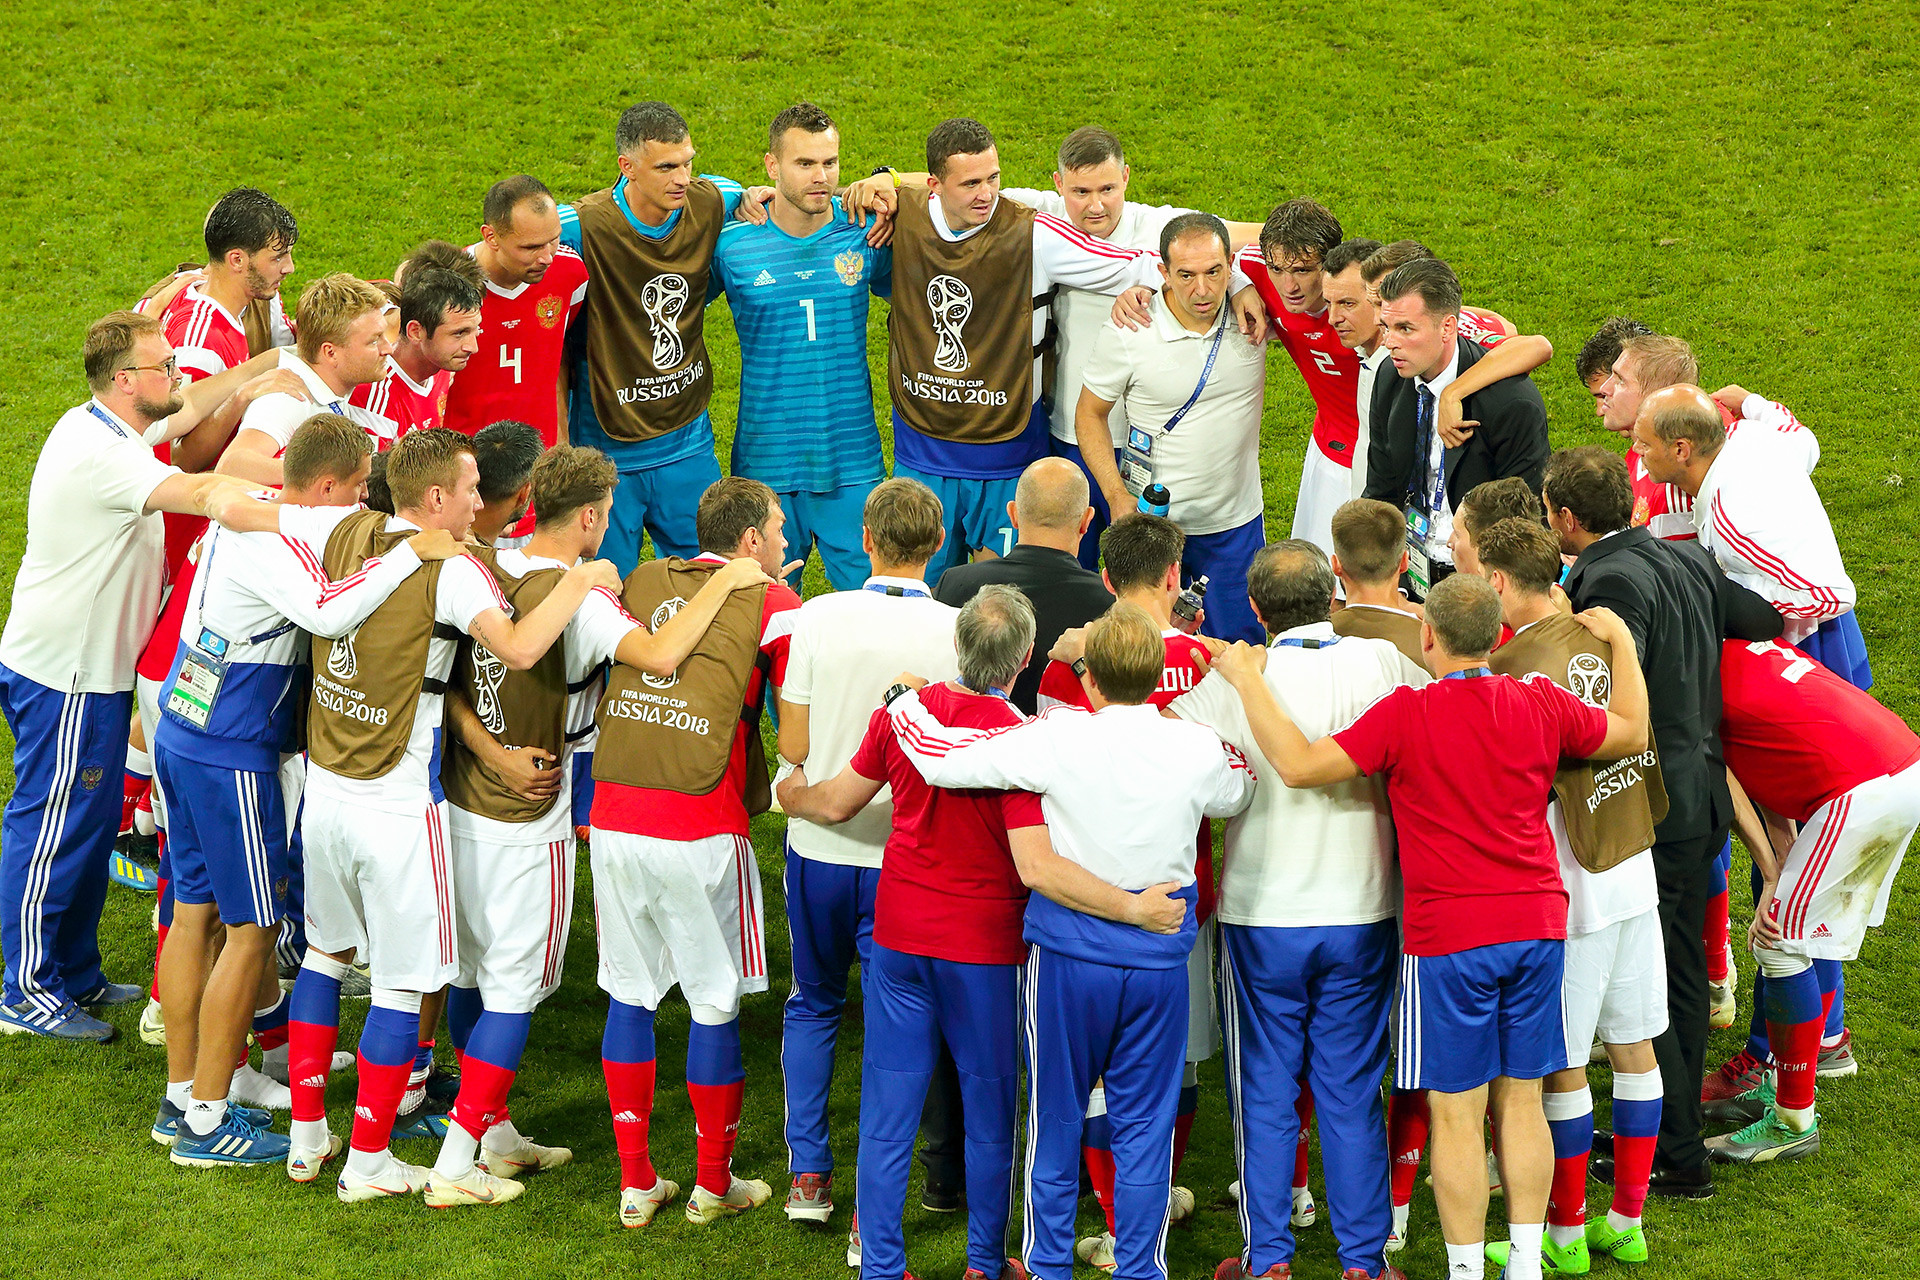 Team Russia before penalty series with Croatia. They lost but remain heroes for all Russian football fans.